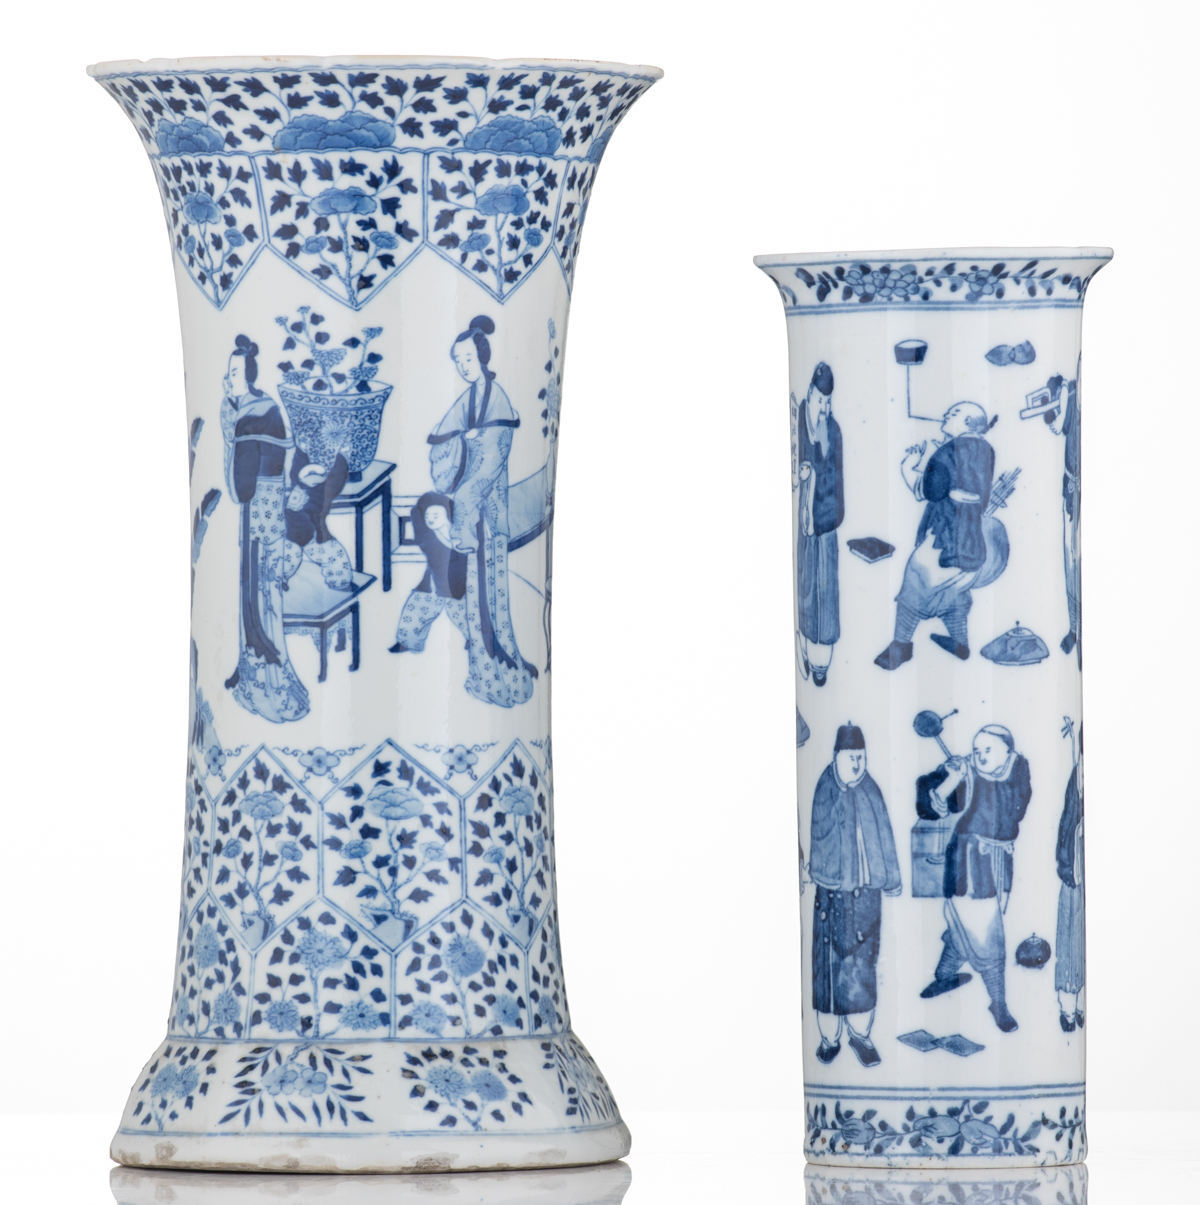 Lot 53 - Two Chinese blue and white gu shaped vases, one decorated with an everyday market scene, with a